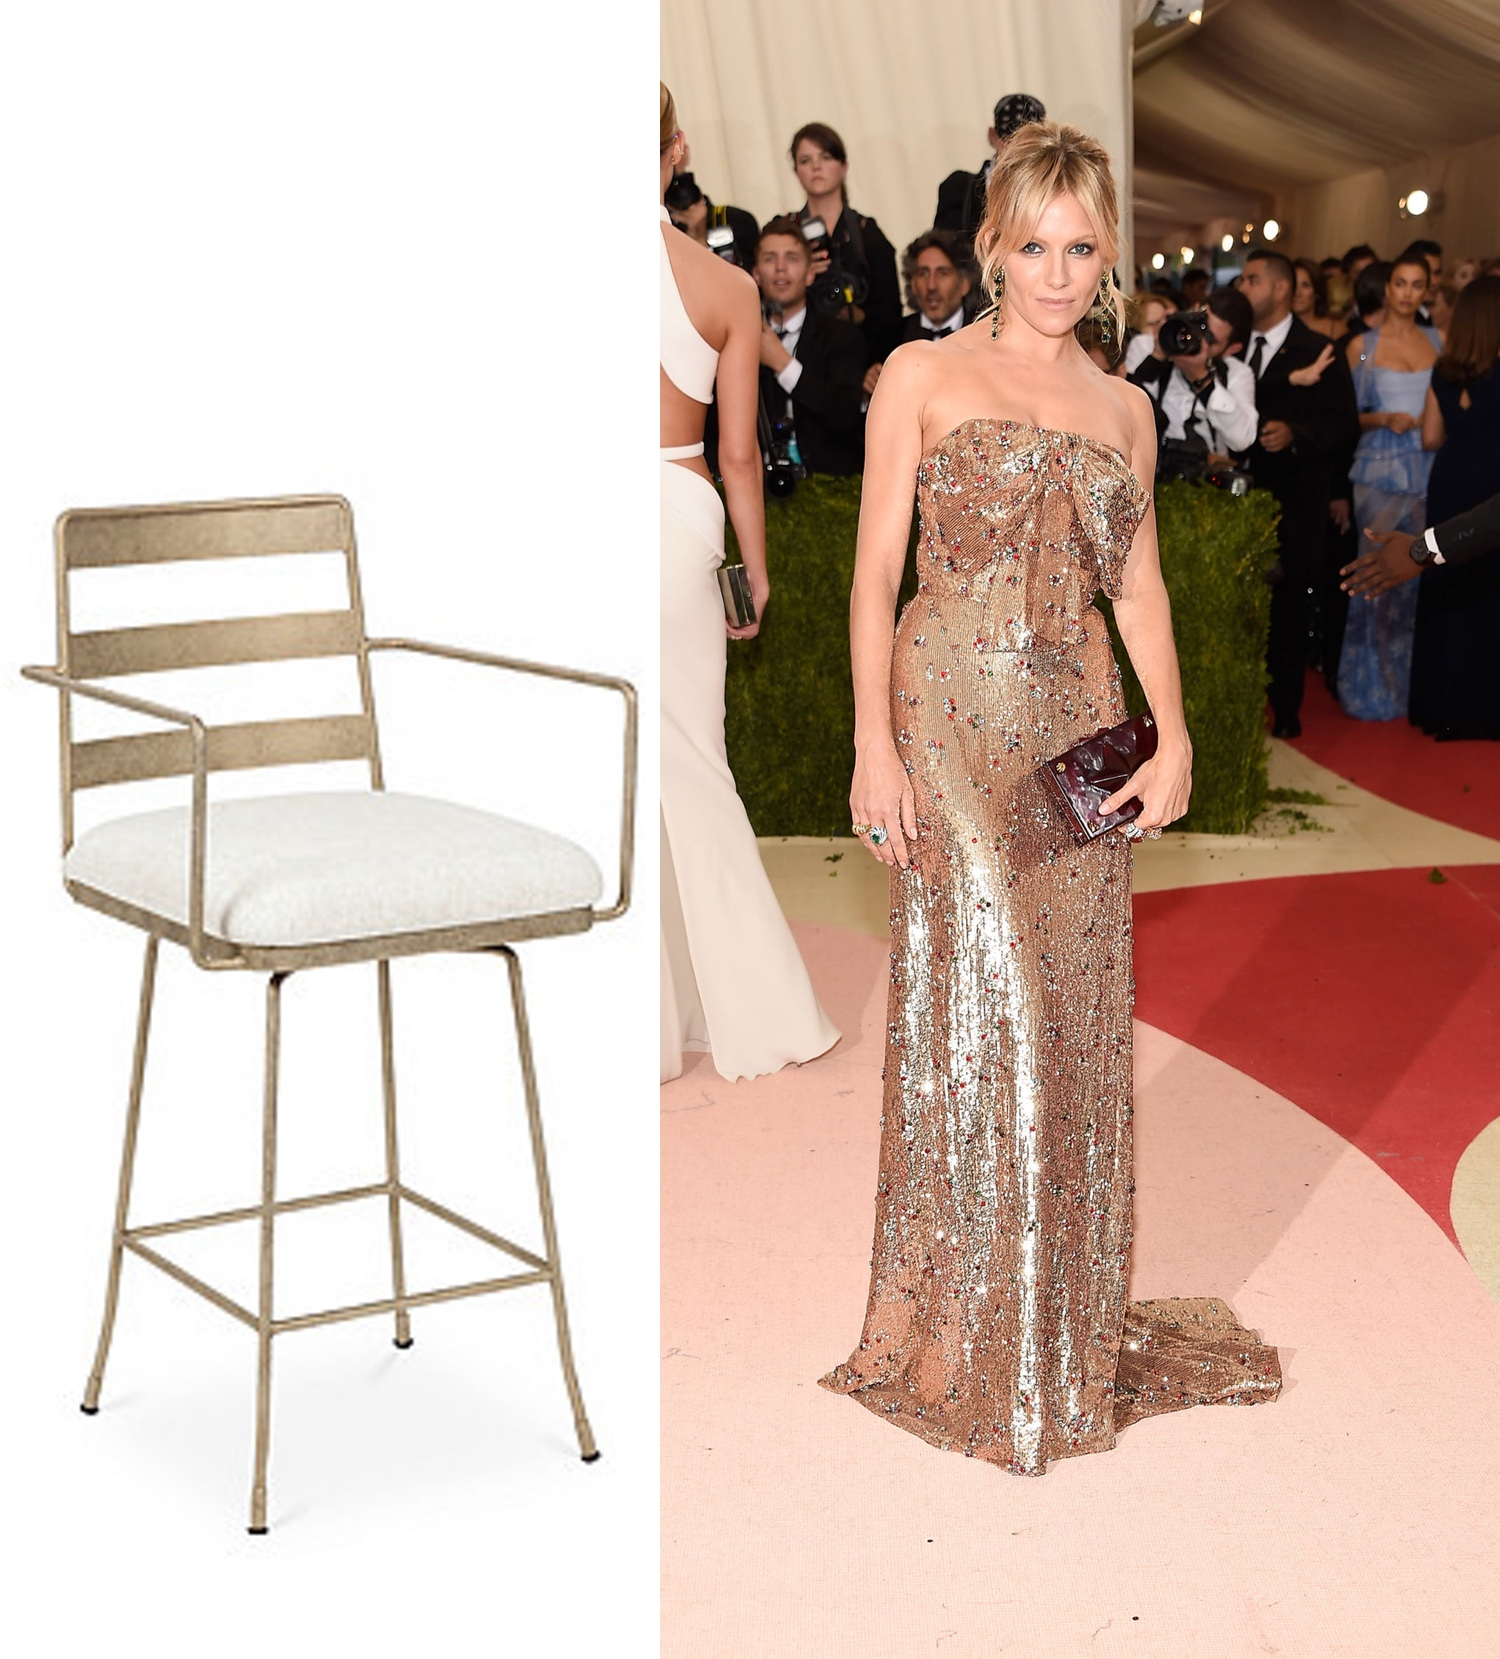 Gold  Counter Stool  | Photo: @ilovesiennamiller